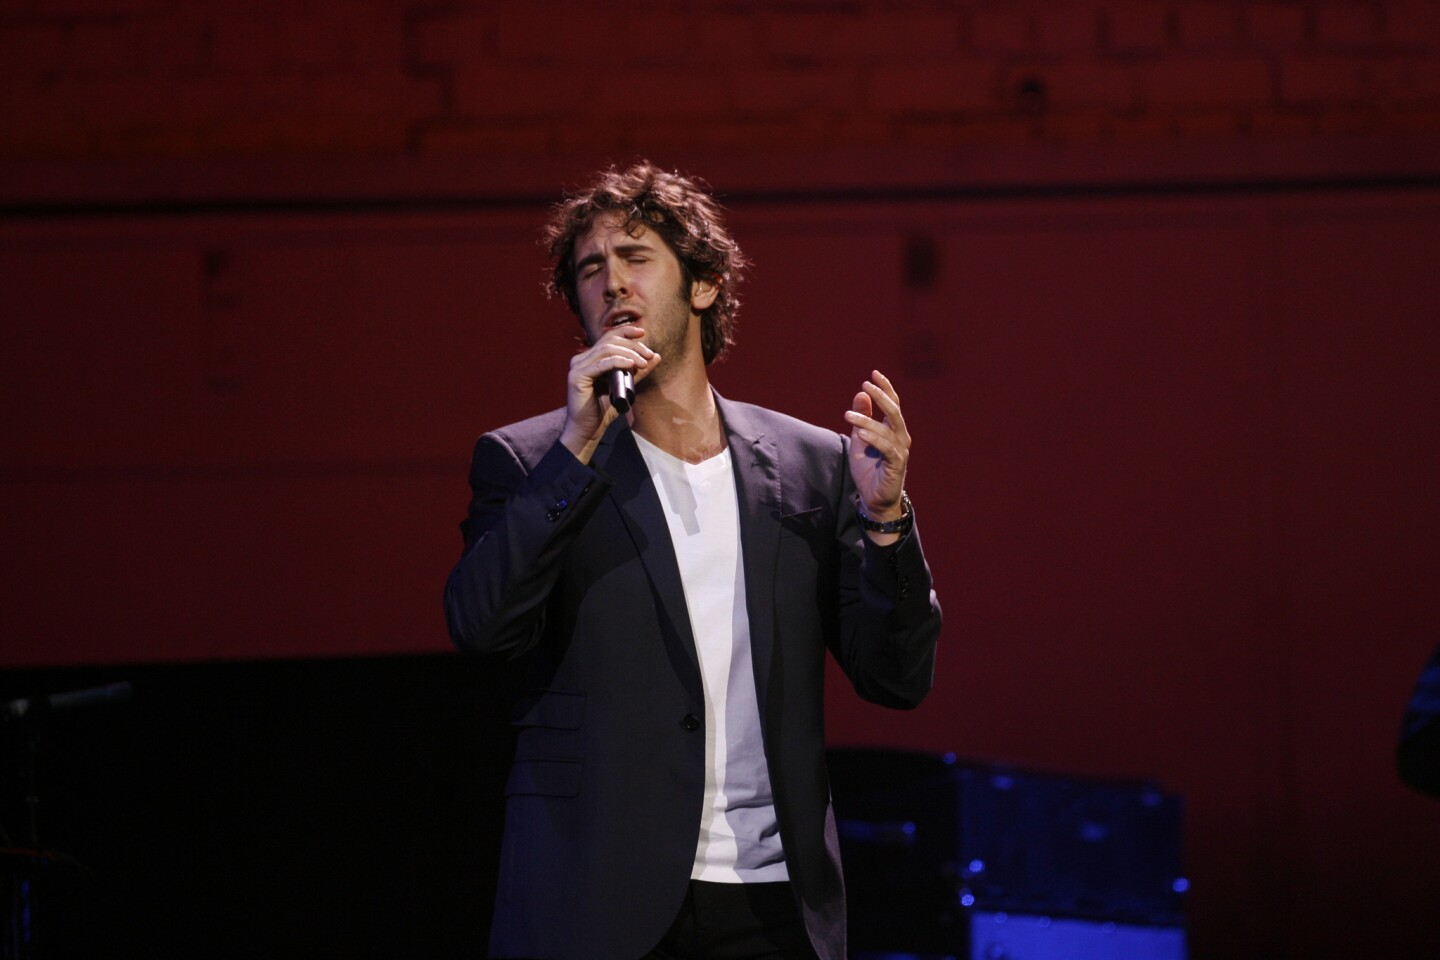 Josh Groban, performing at the Amway Center on Saturday.